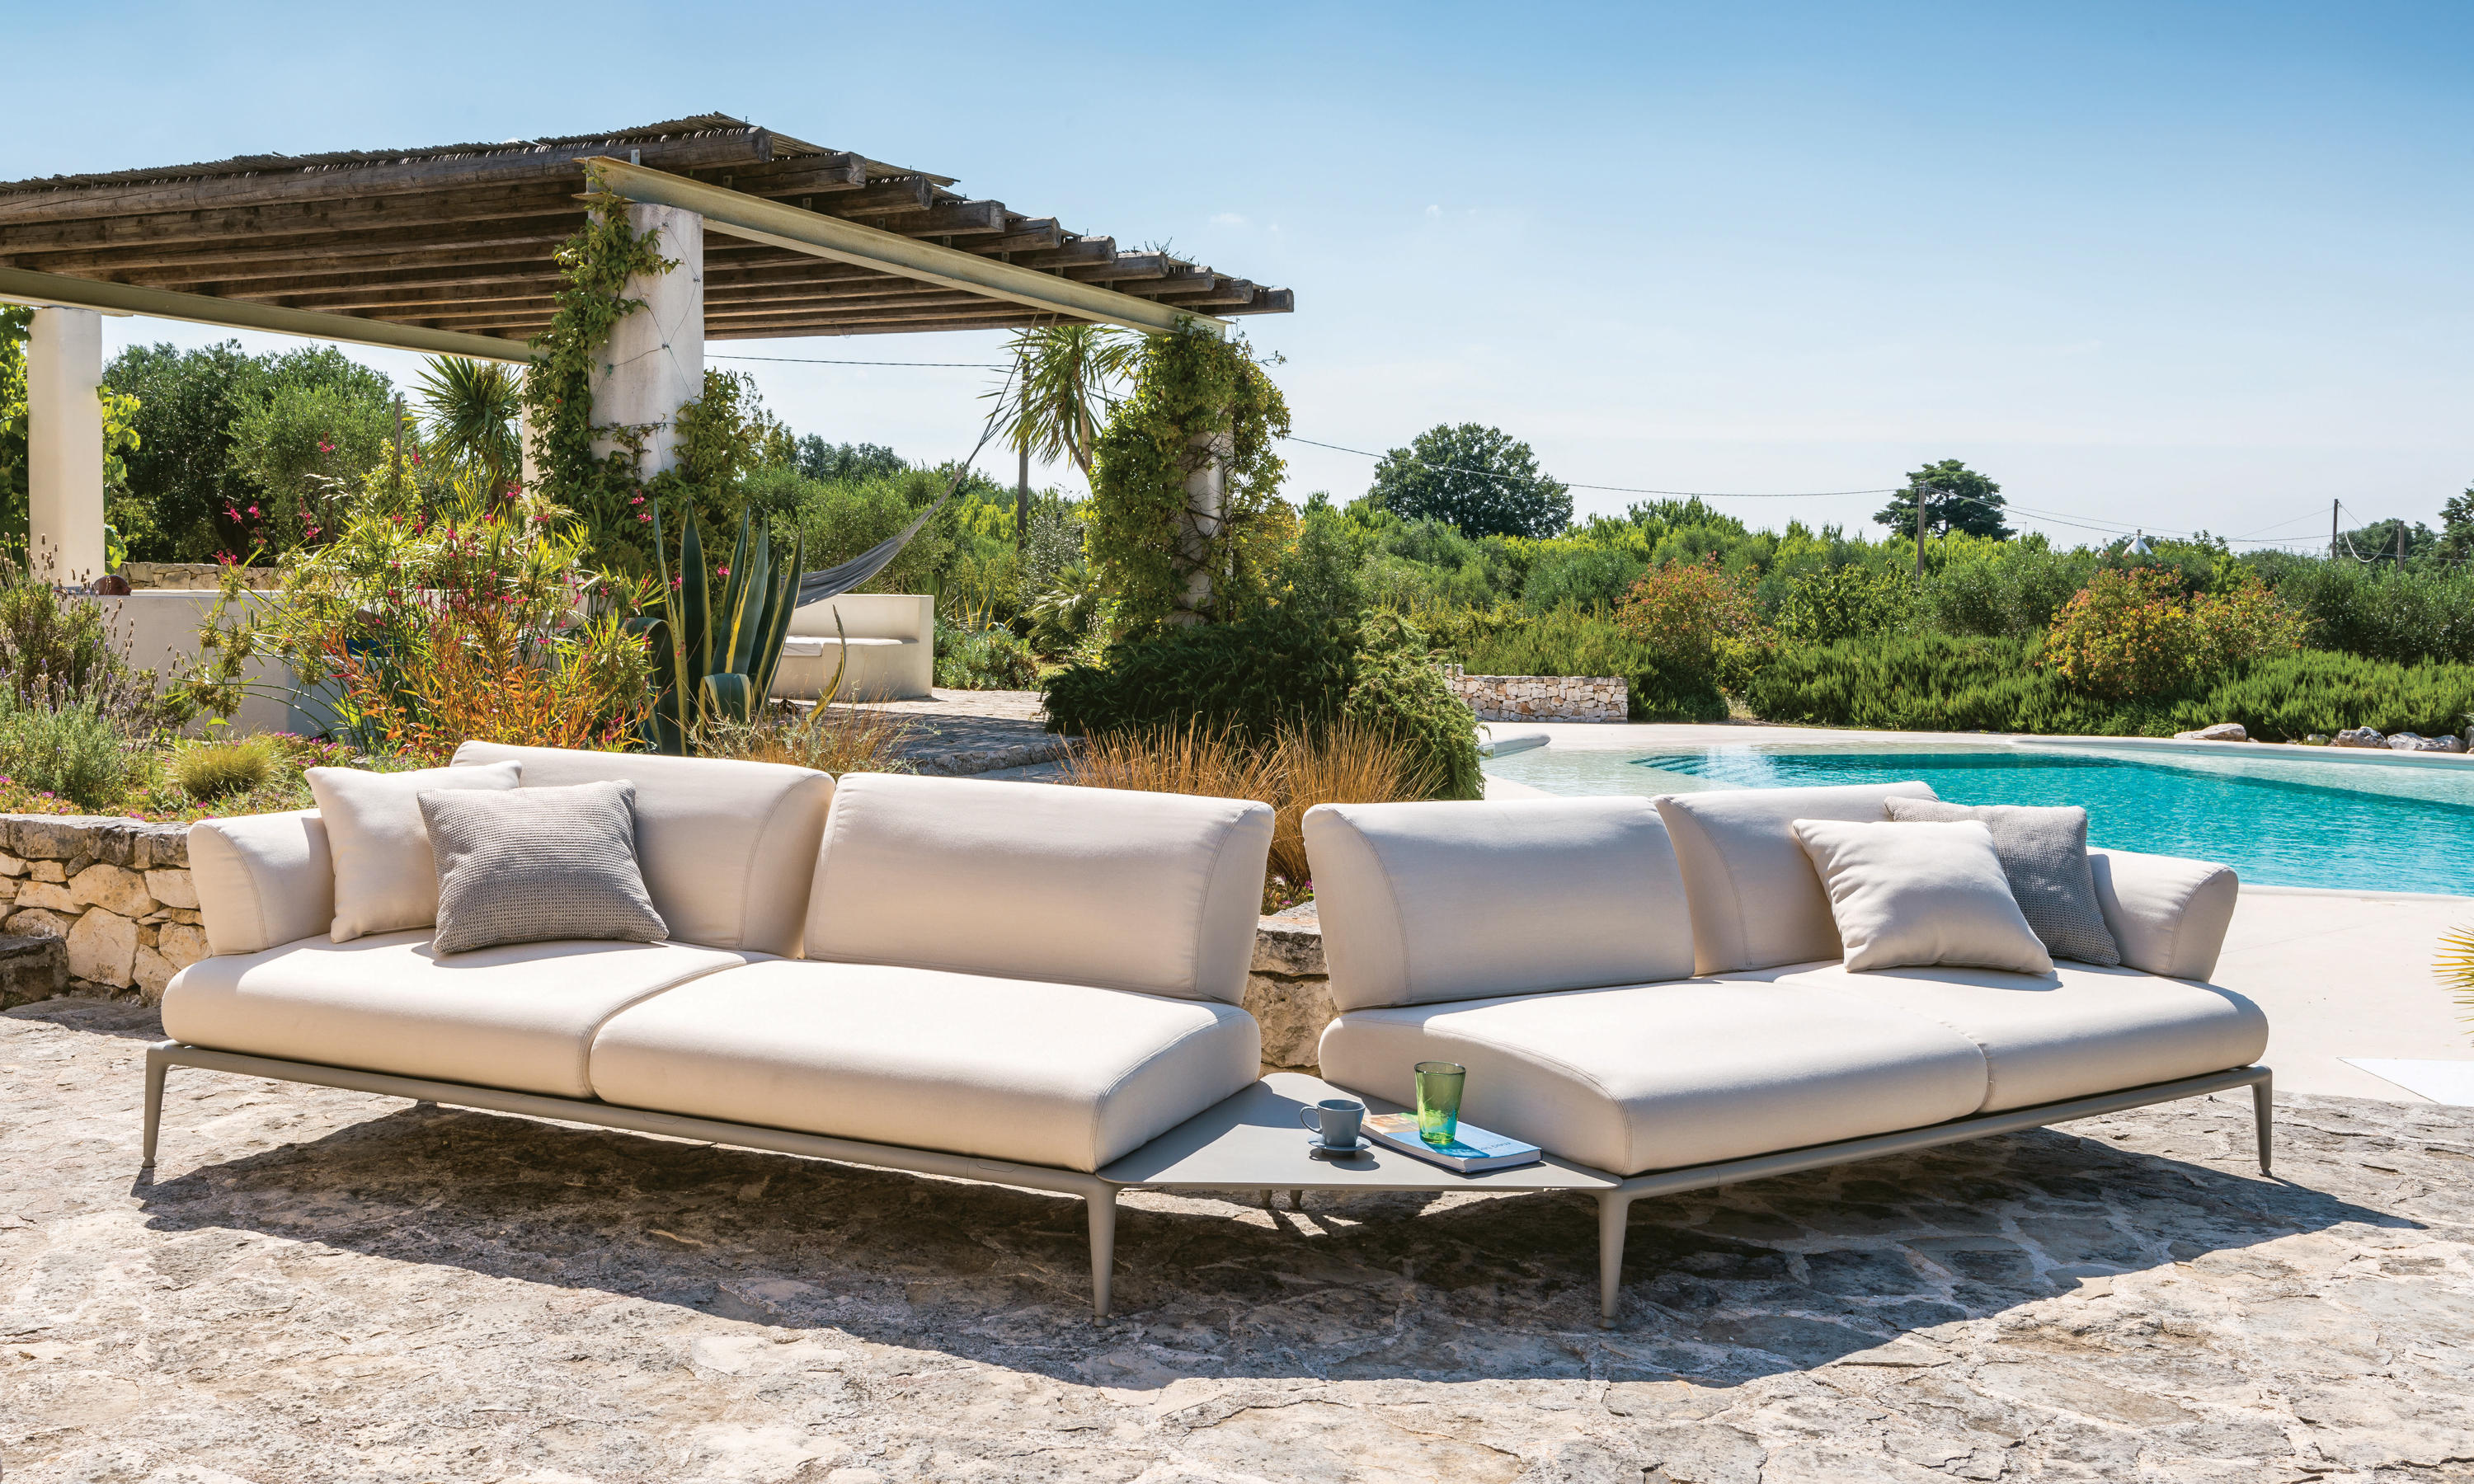 joint sofa  garden sofas from fast  architonic -  joint sofa by fast